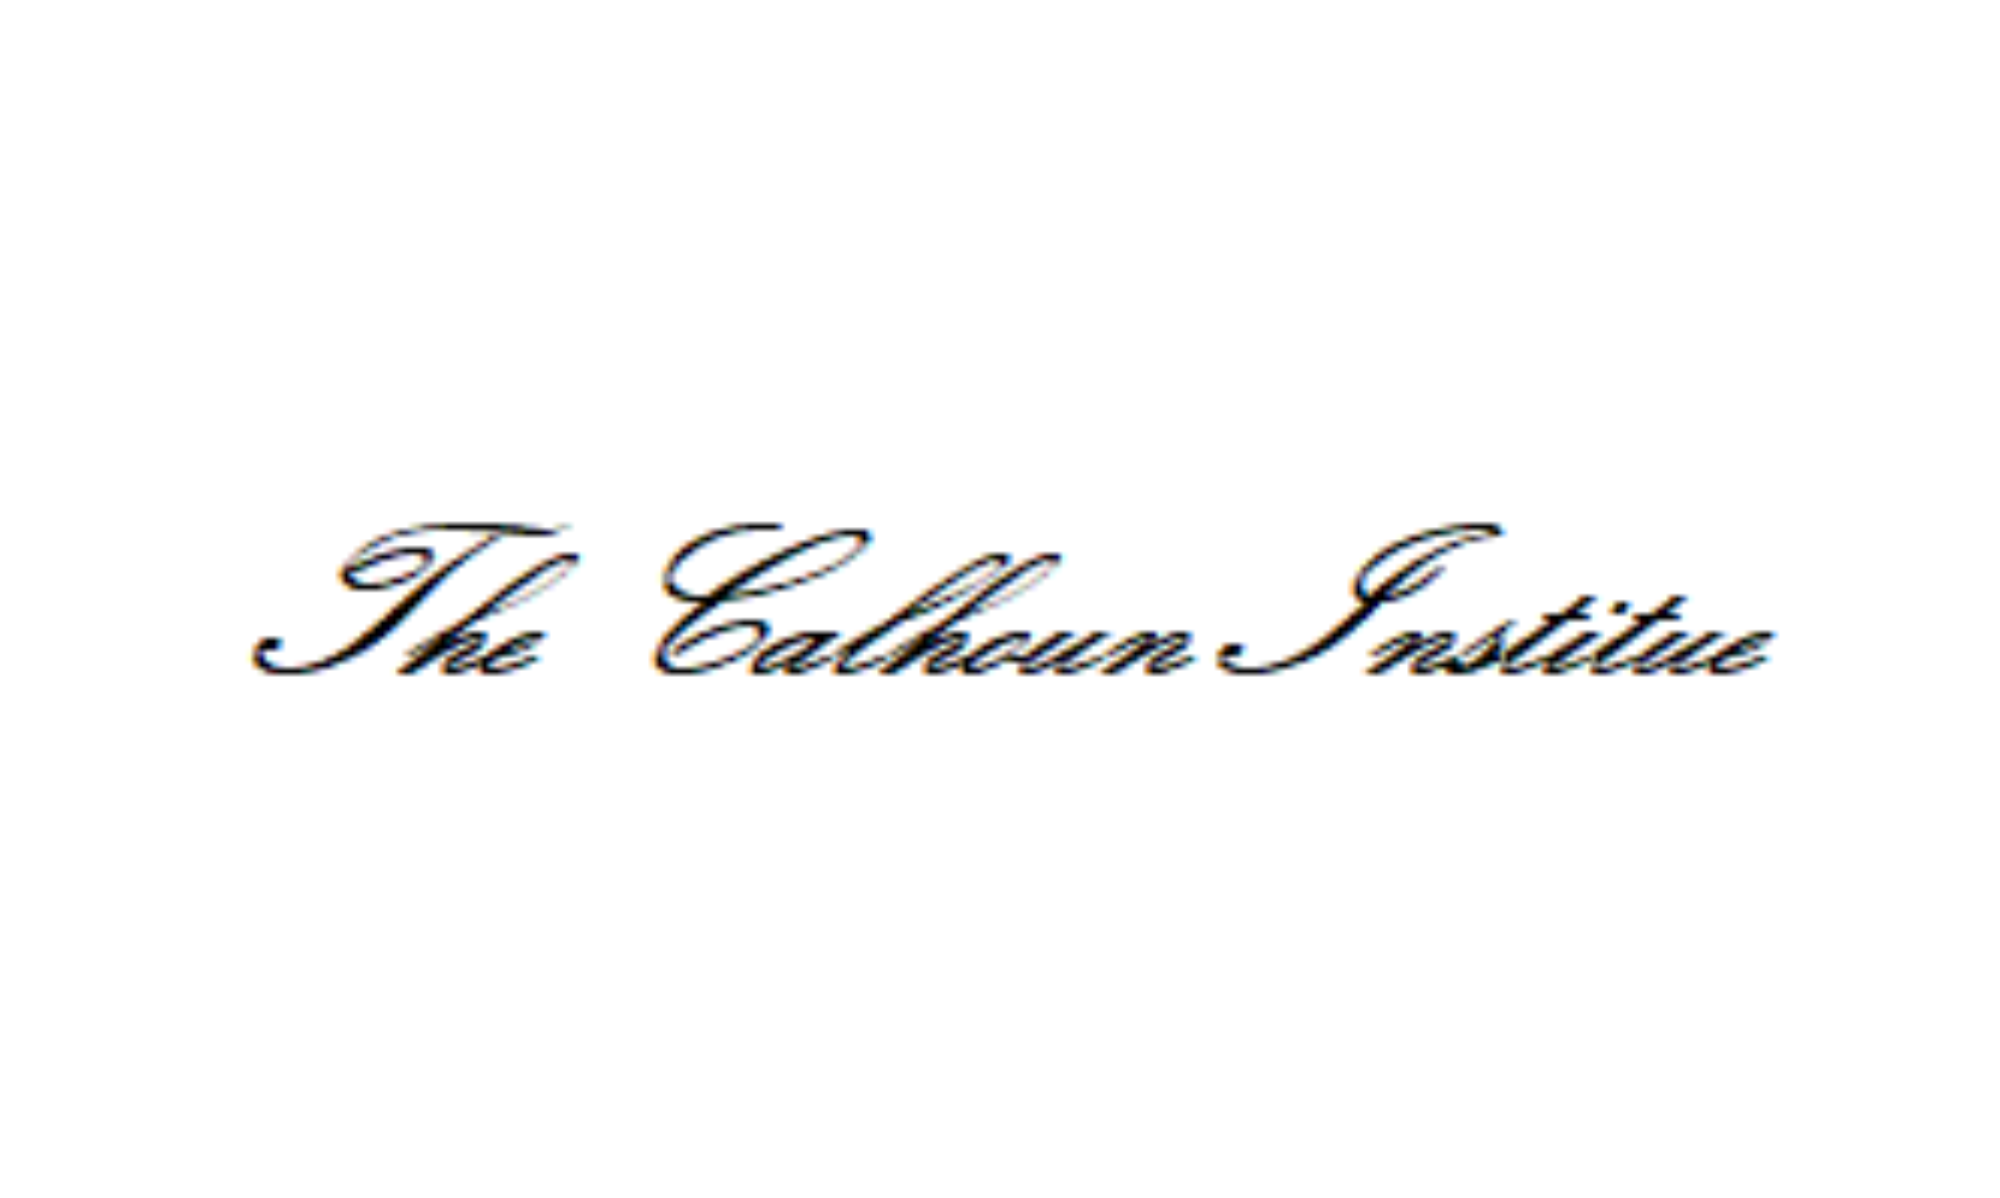 The Calhoun Institute for the Study of Secession, Devolution and Concurrent Majority Governance